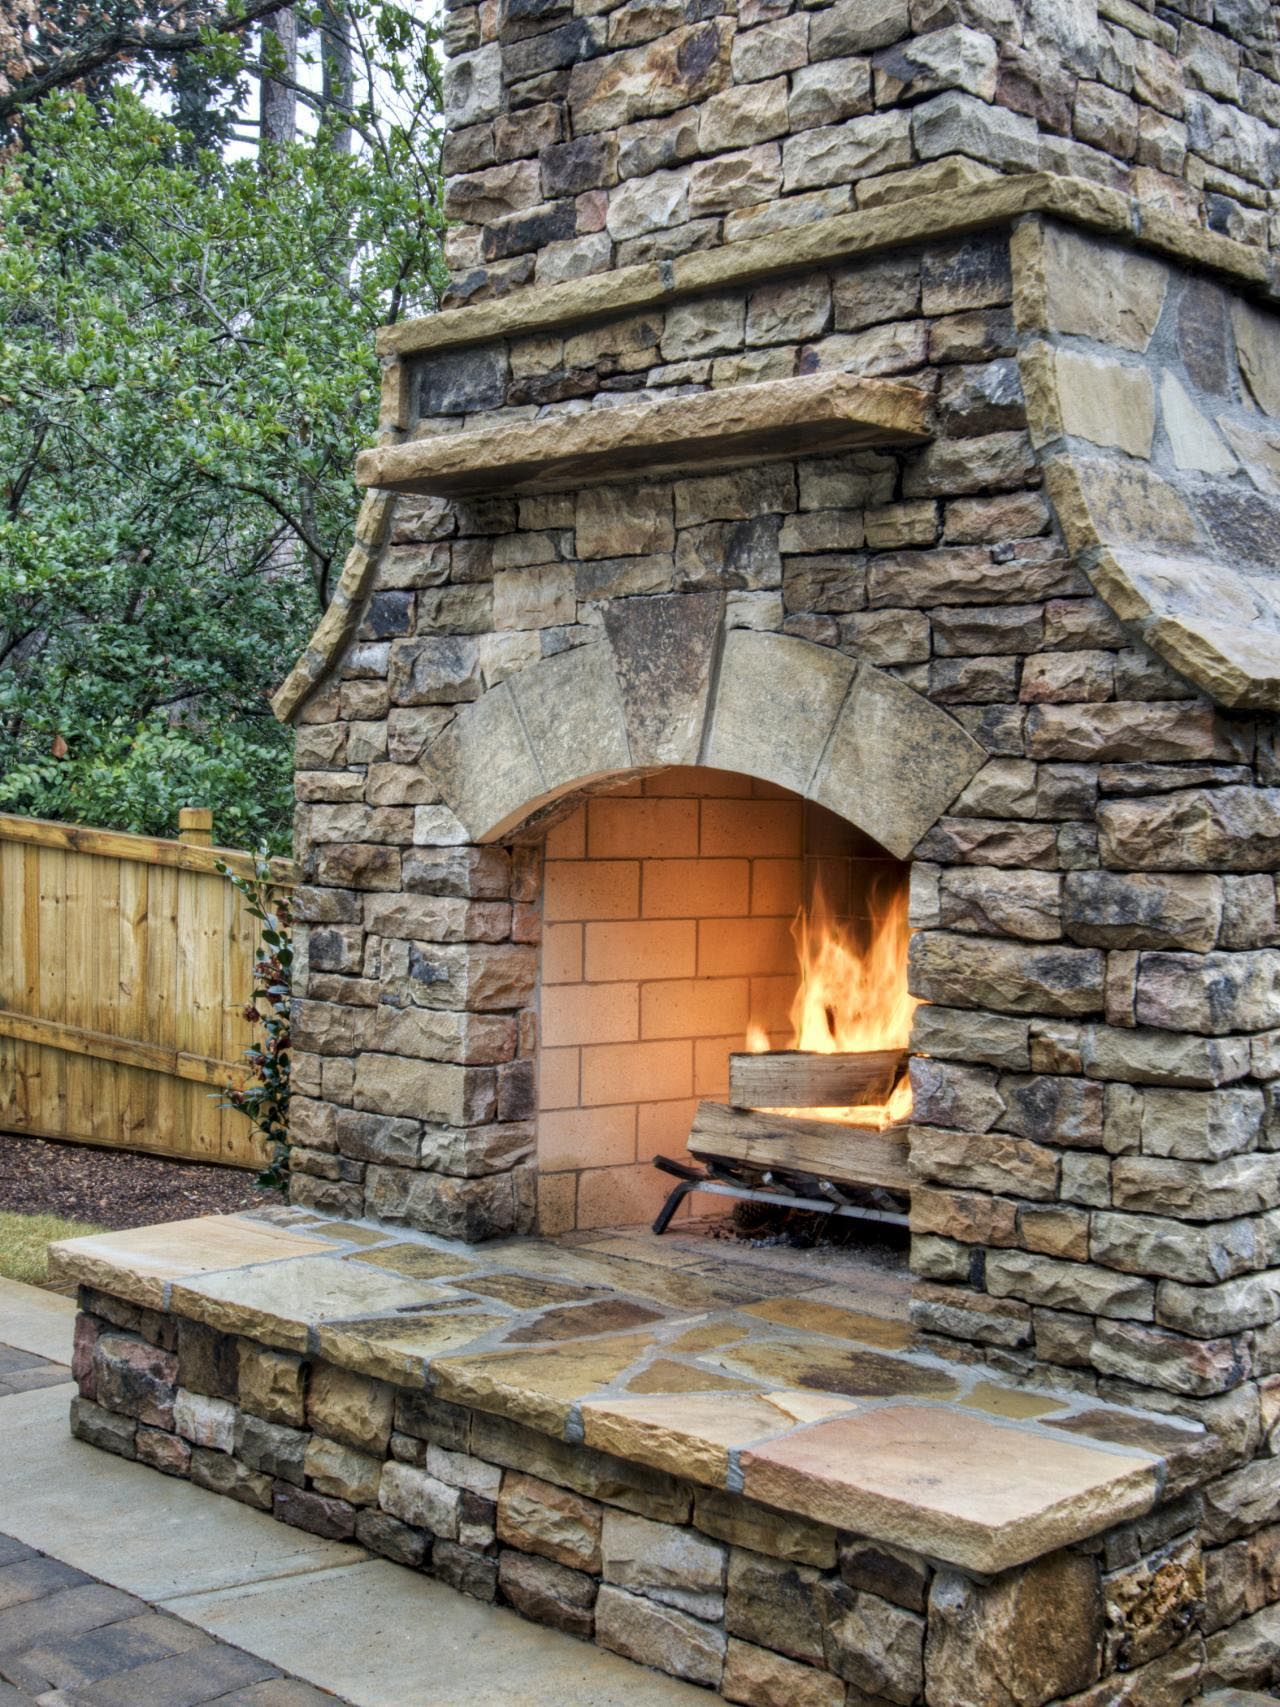 How to Install Dry Stack Stone Fireplace   Fireplace   Pinterest ...